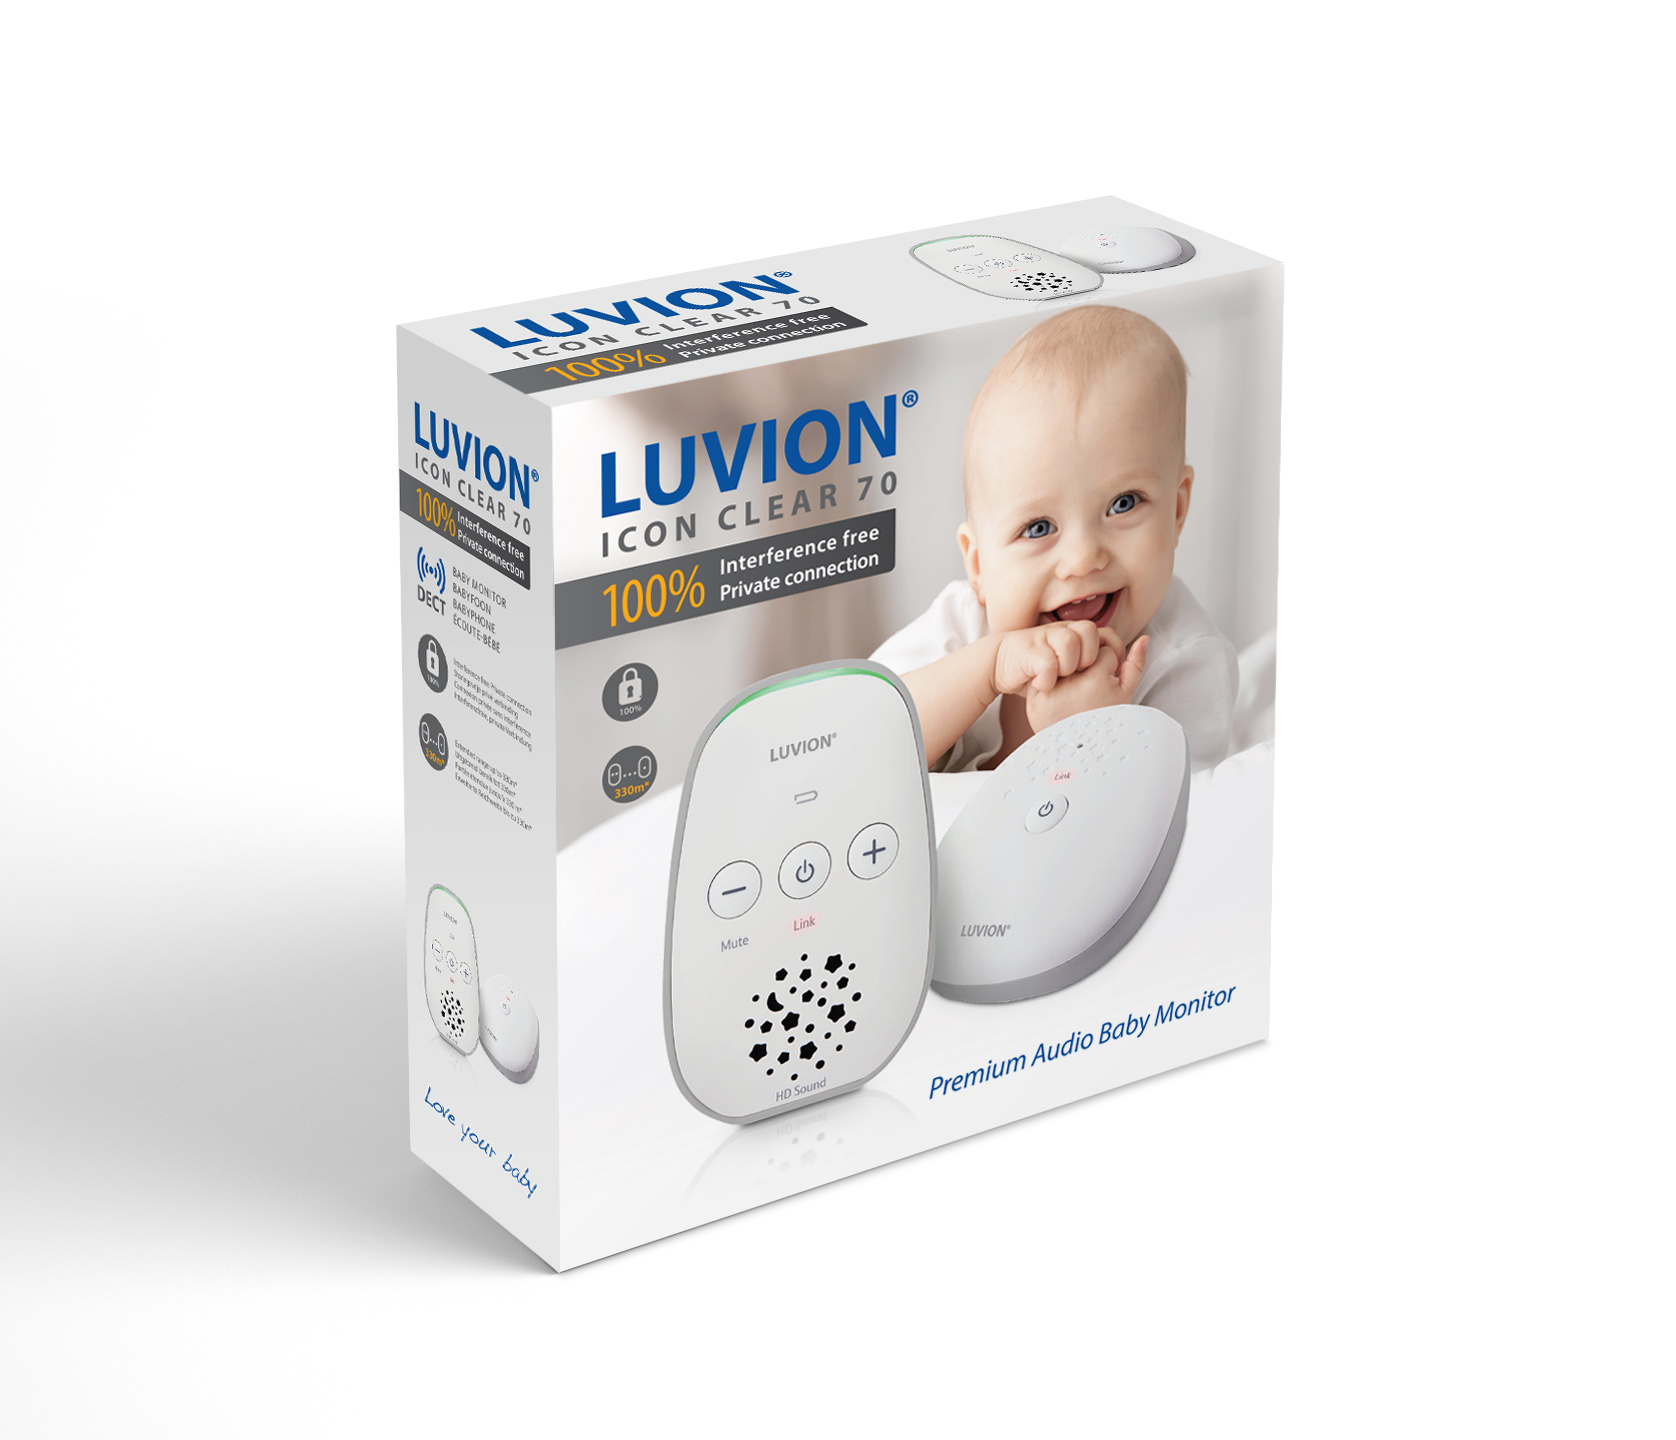 Luvion Icon Clear 70 dect babyfoon verpakking